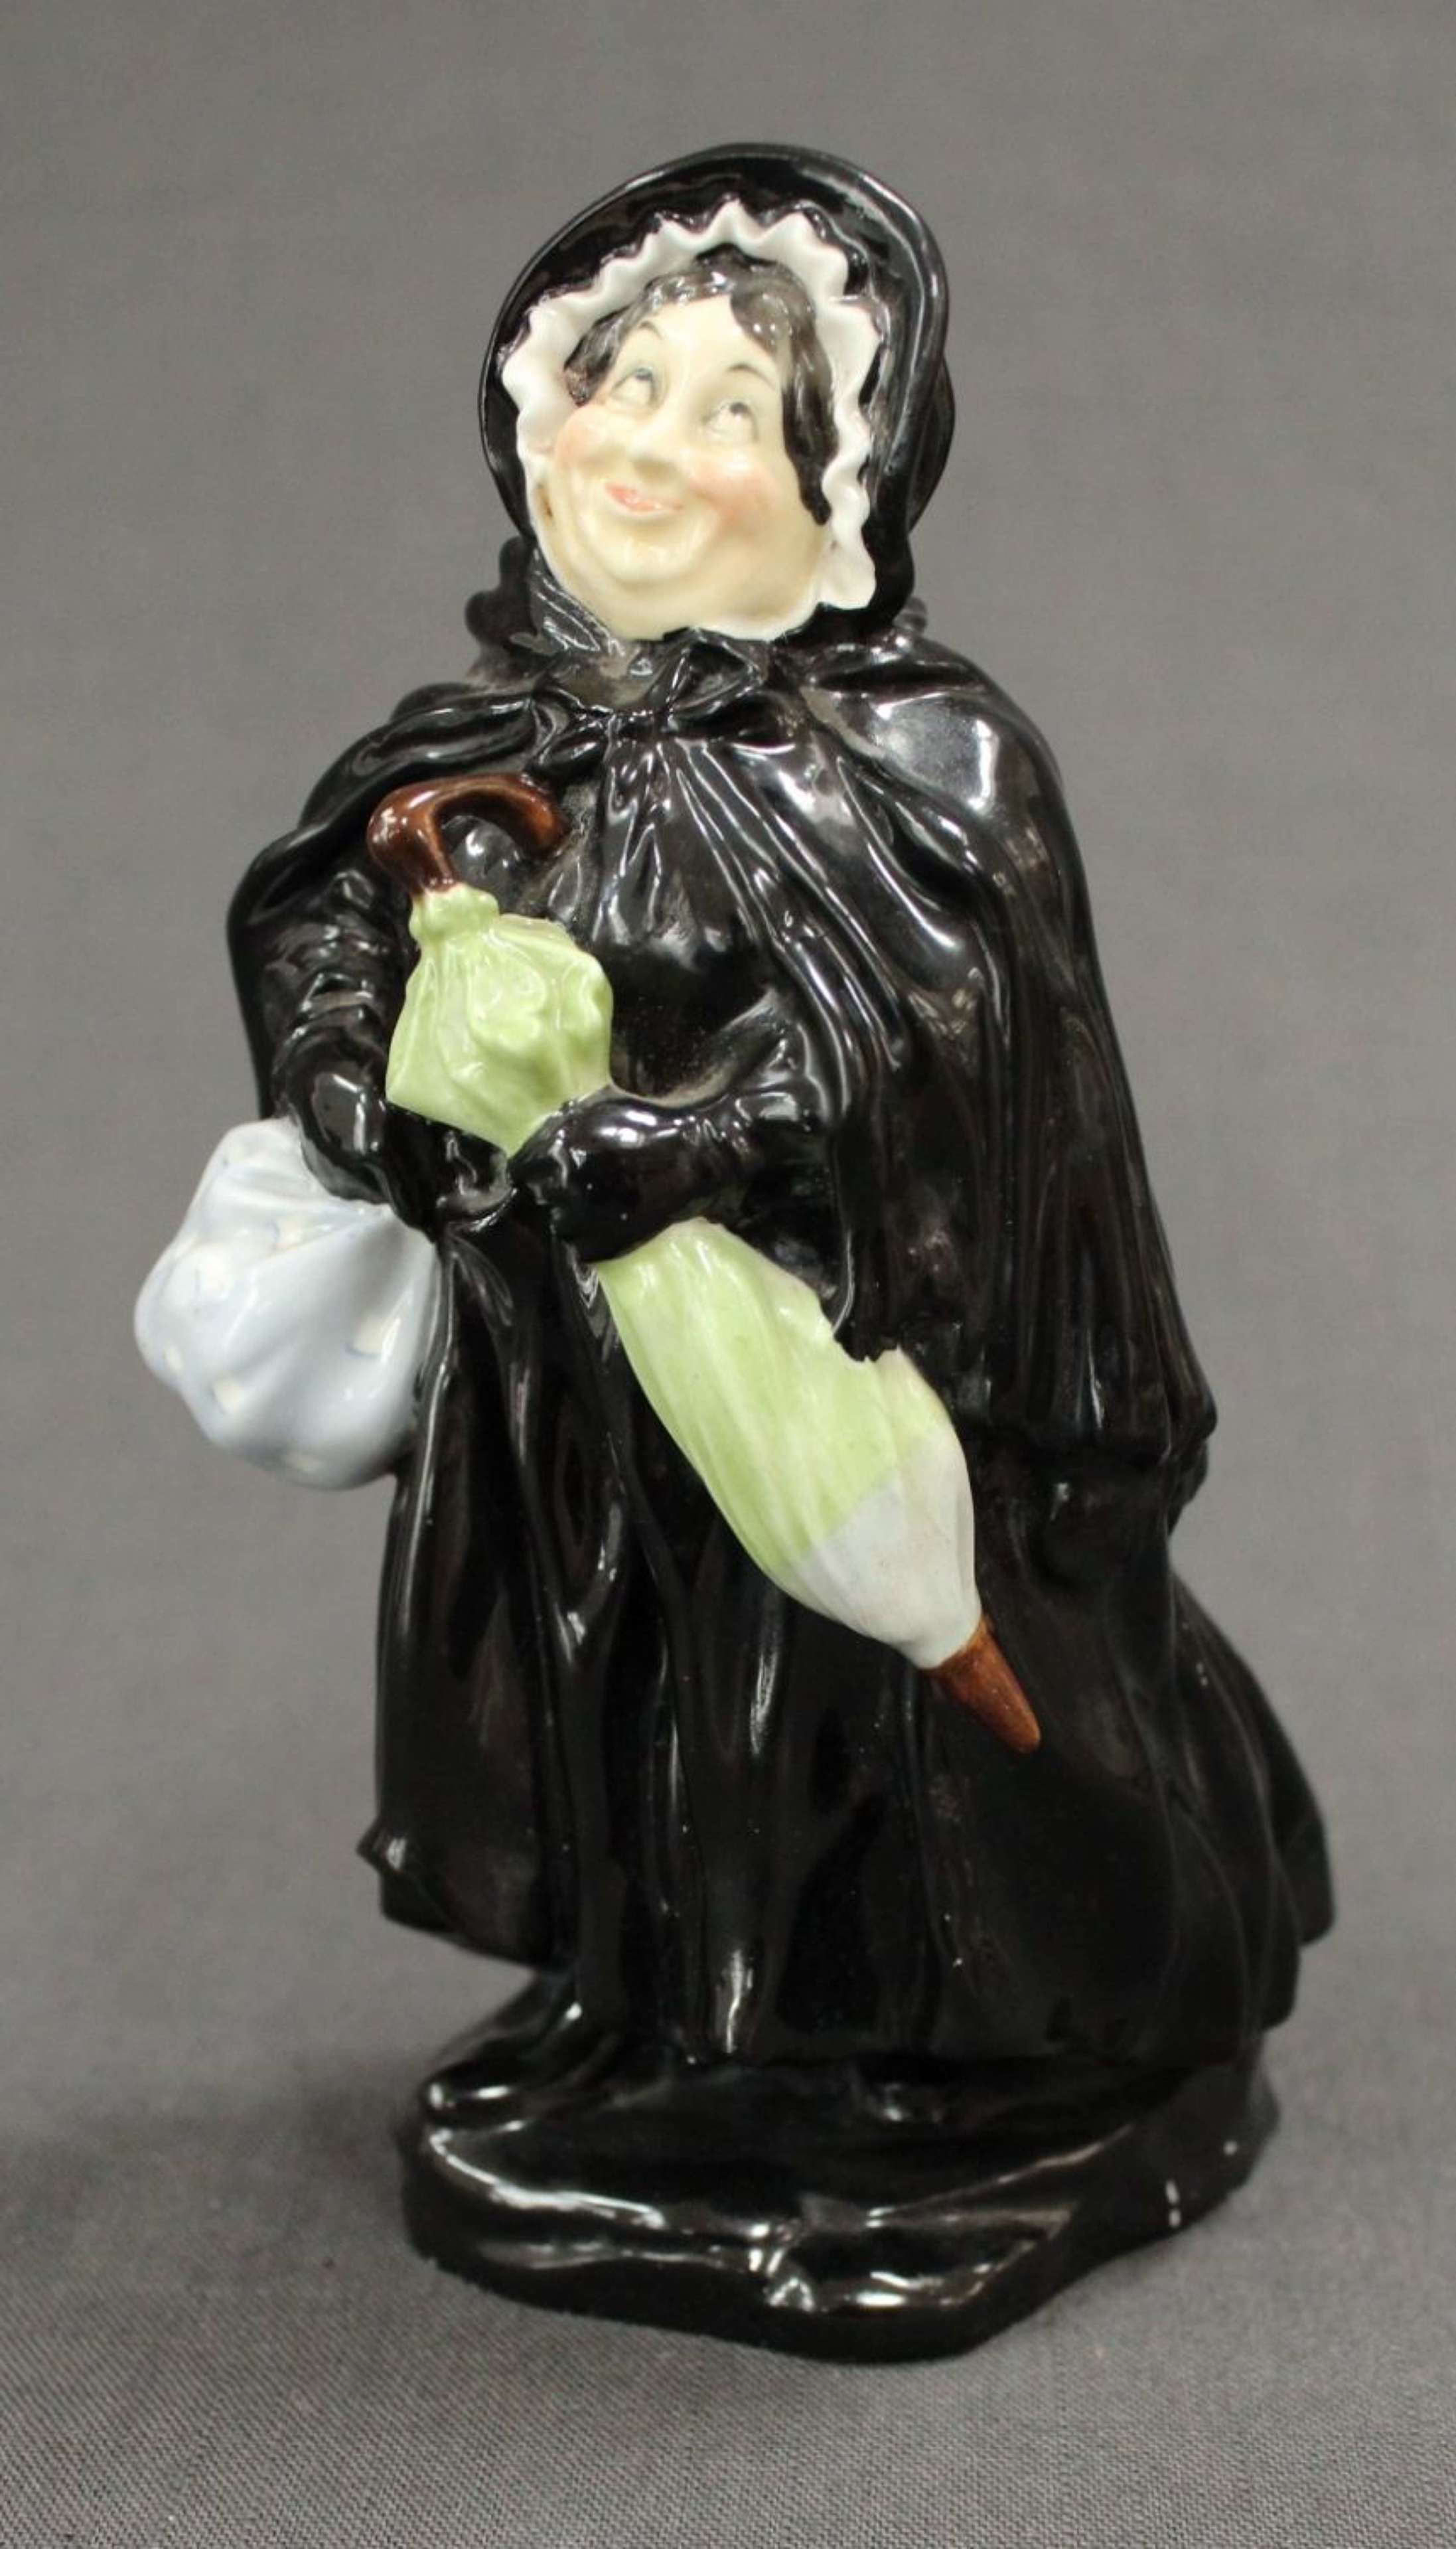 An early Royal Doulton figure of Sairey Gamp